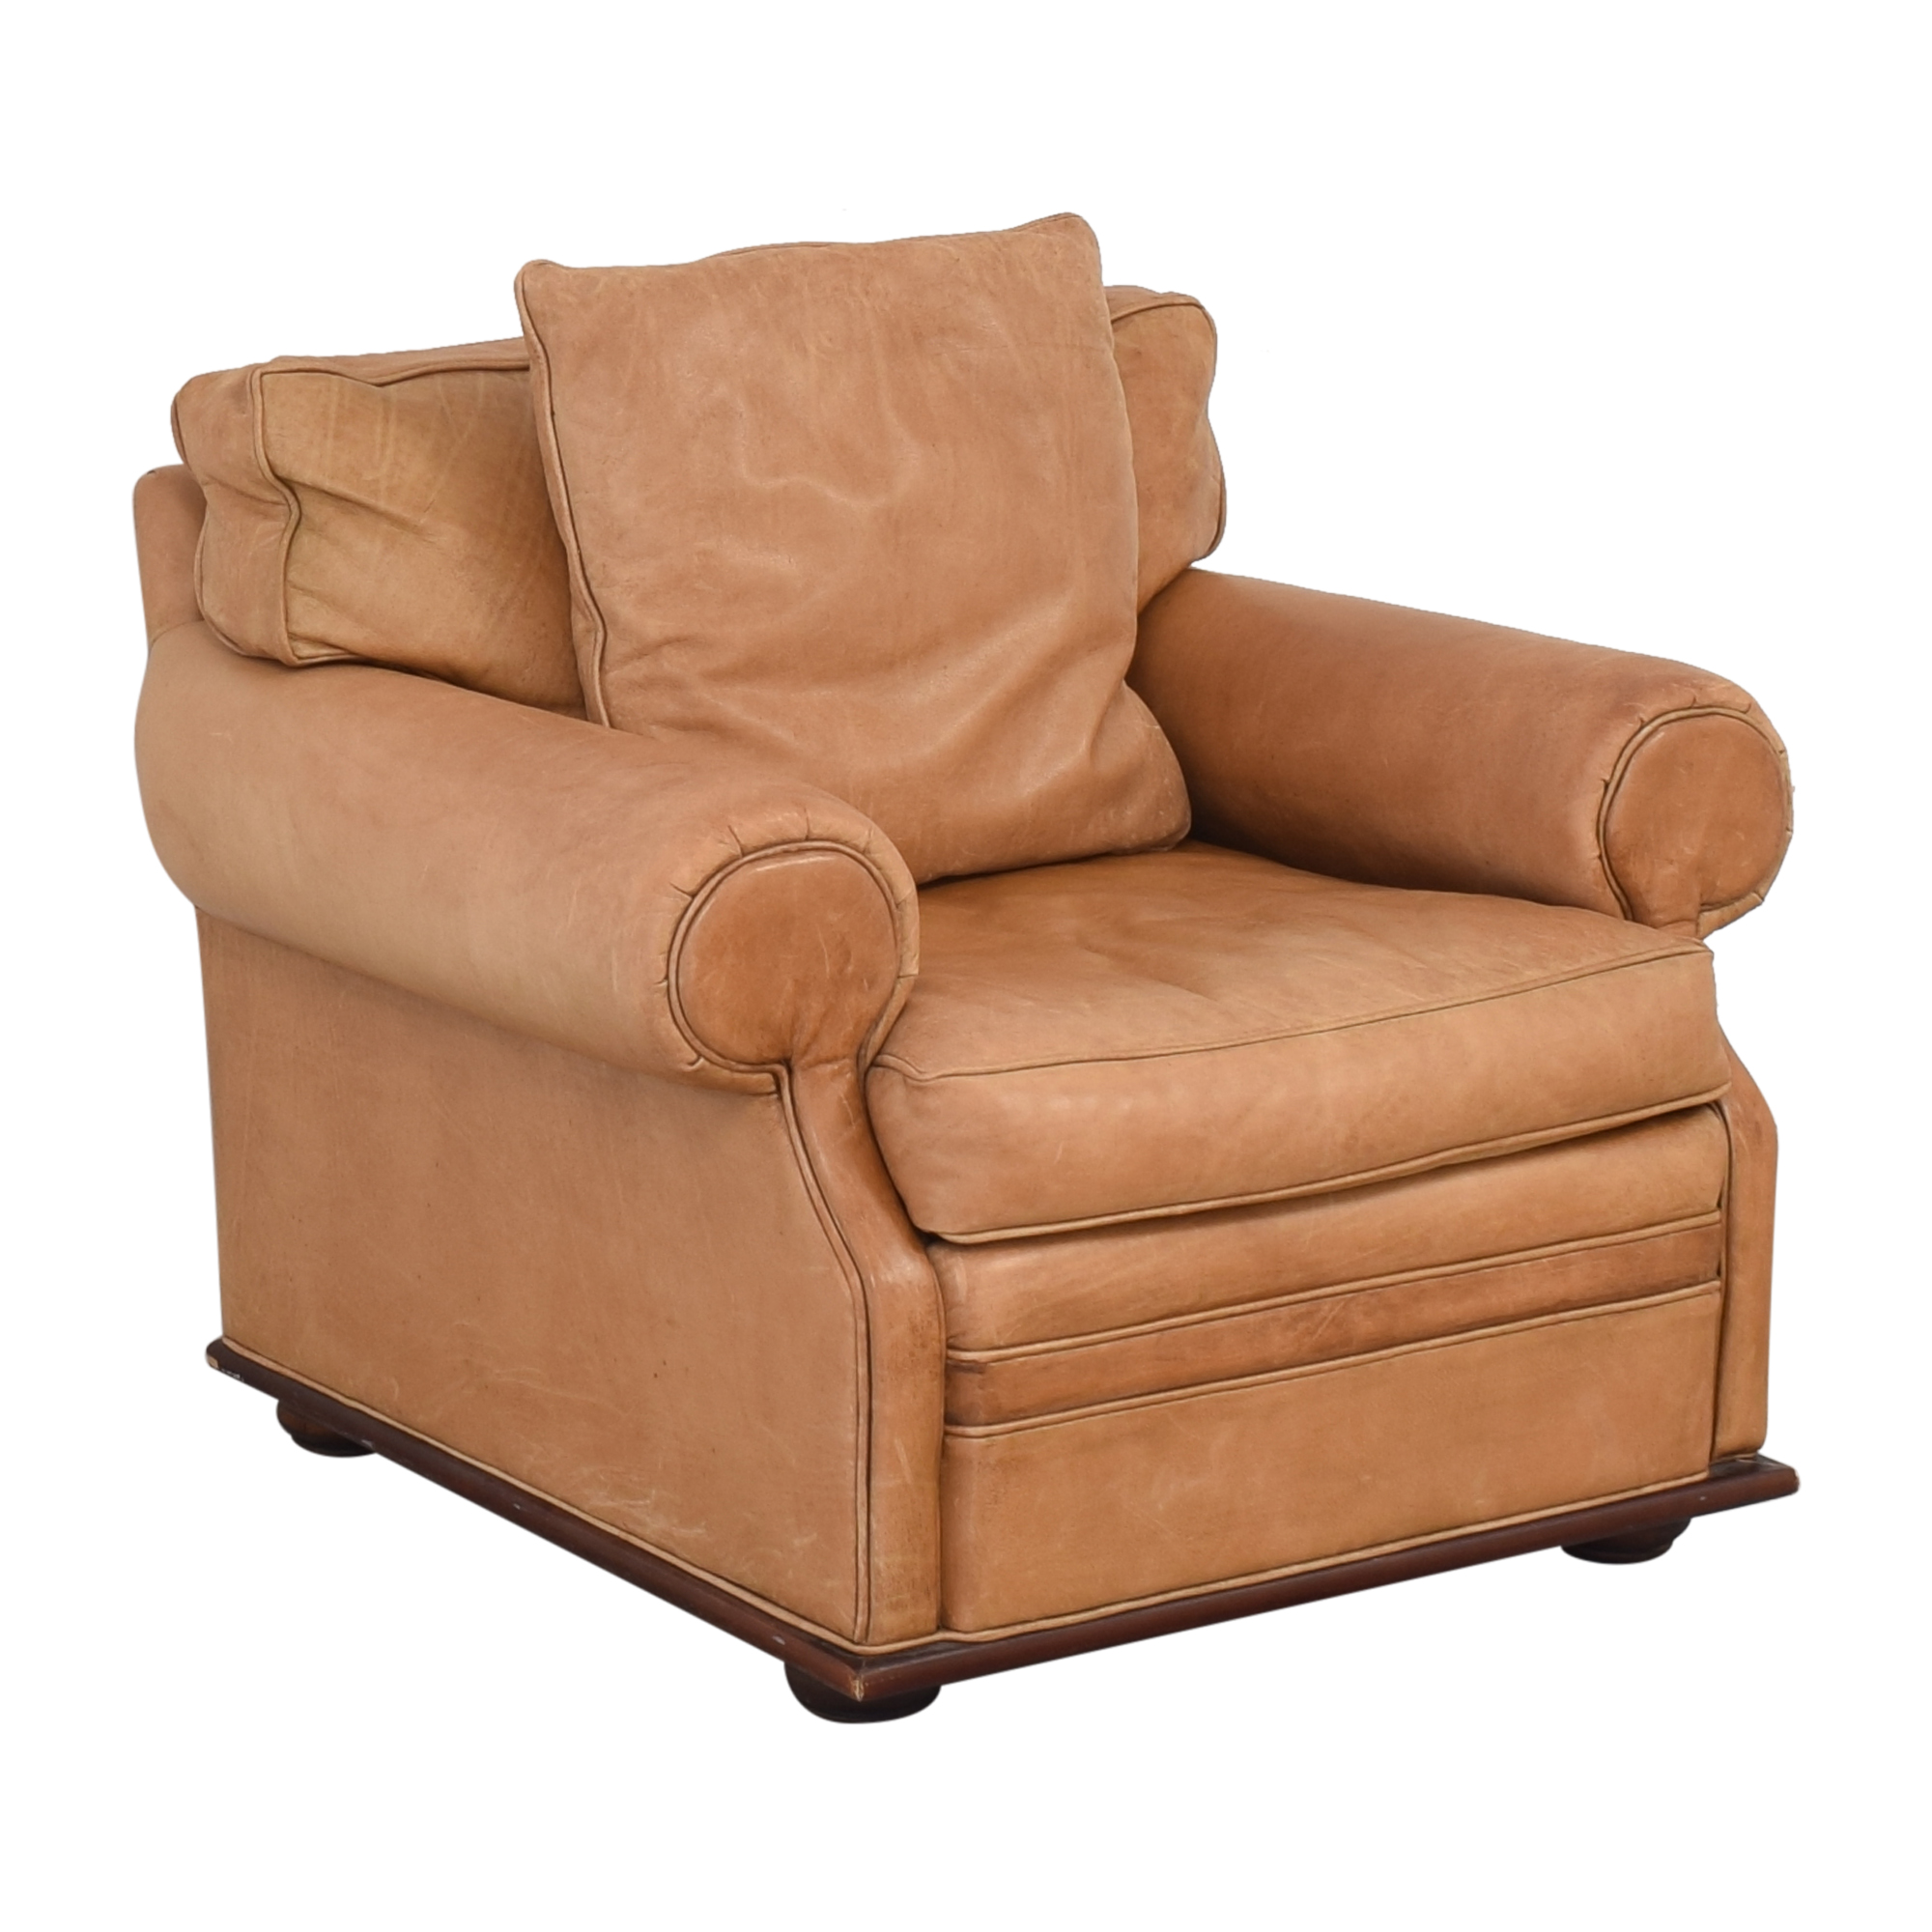 Ralph Lauren Home Ralph Lauren Roll Arm Accent Chair discount